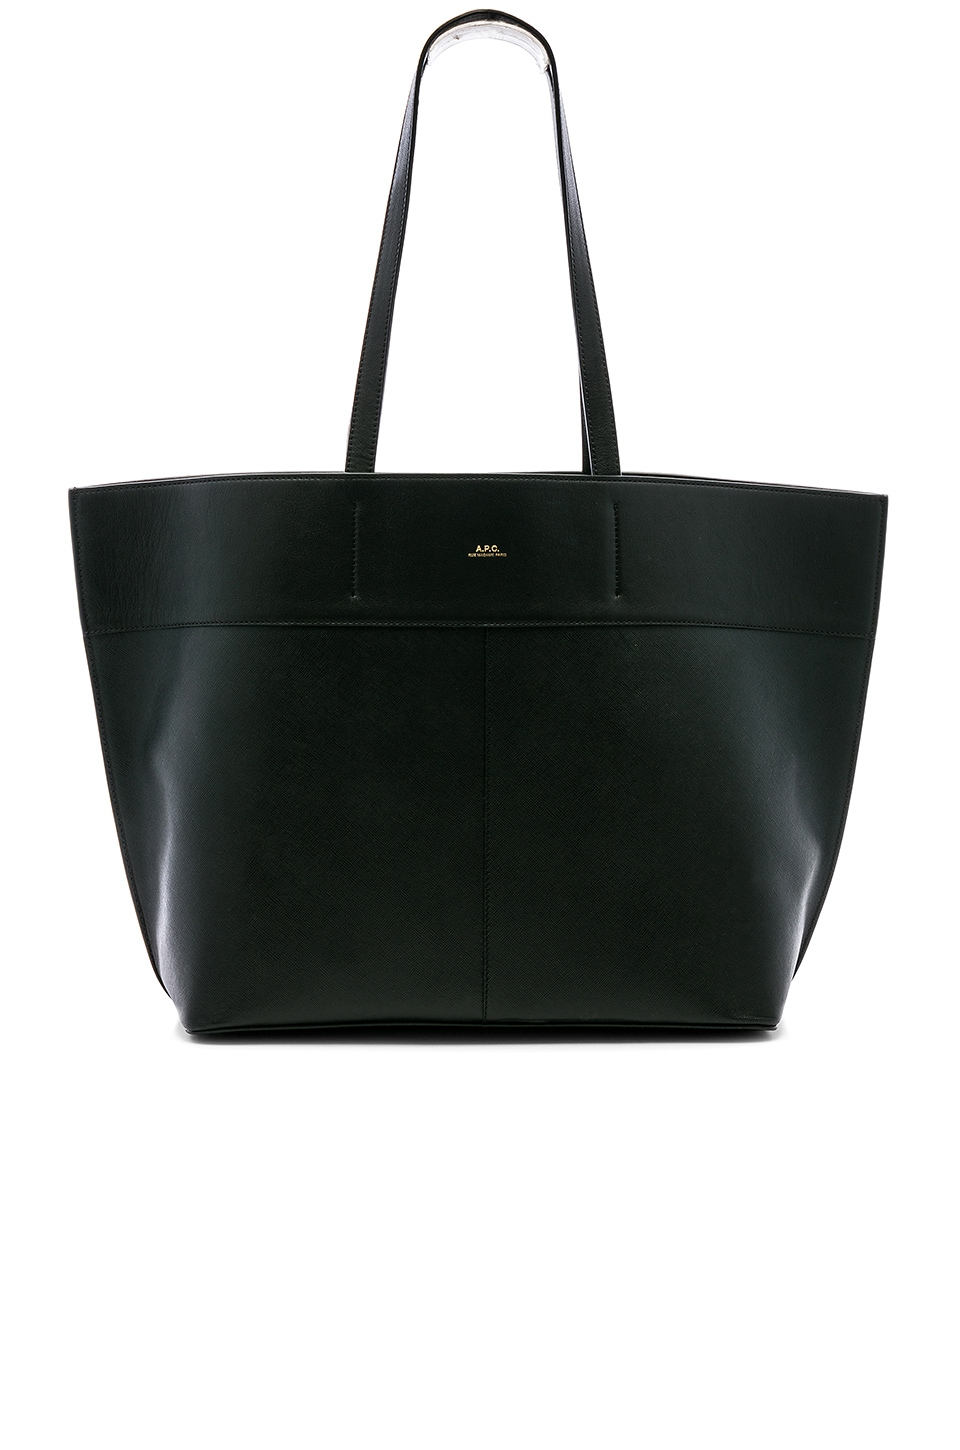 A.P.C. Totally Tote in Noir